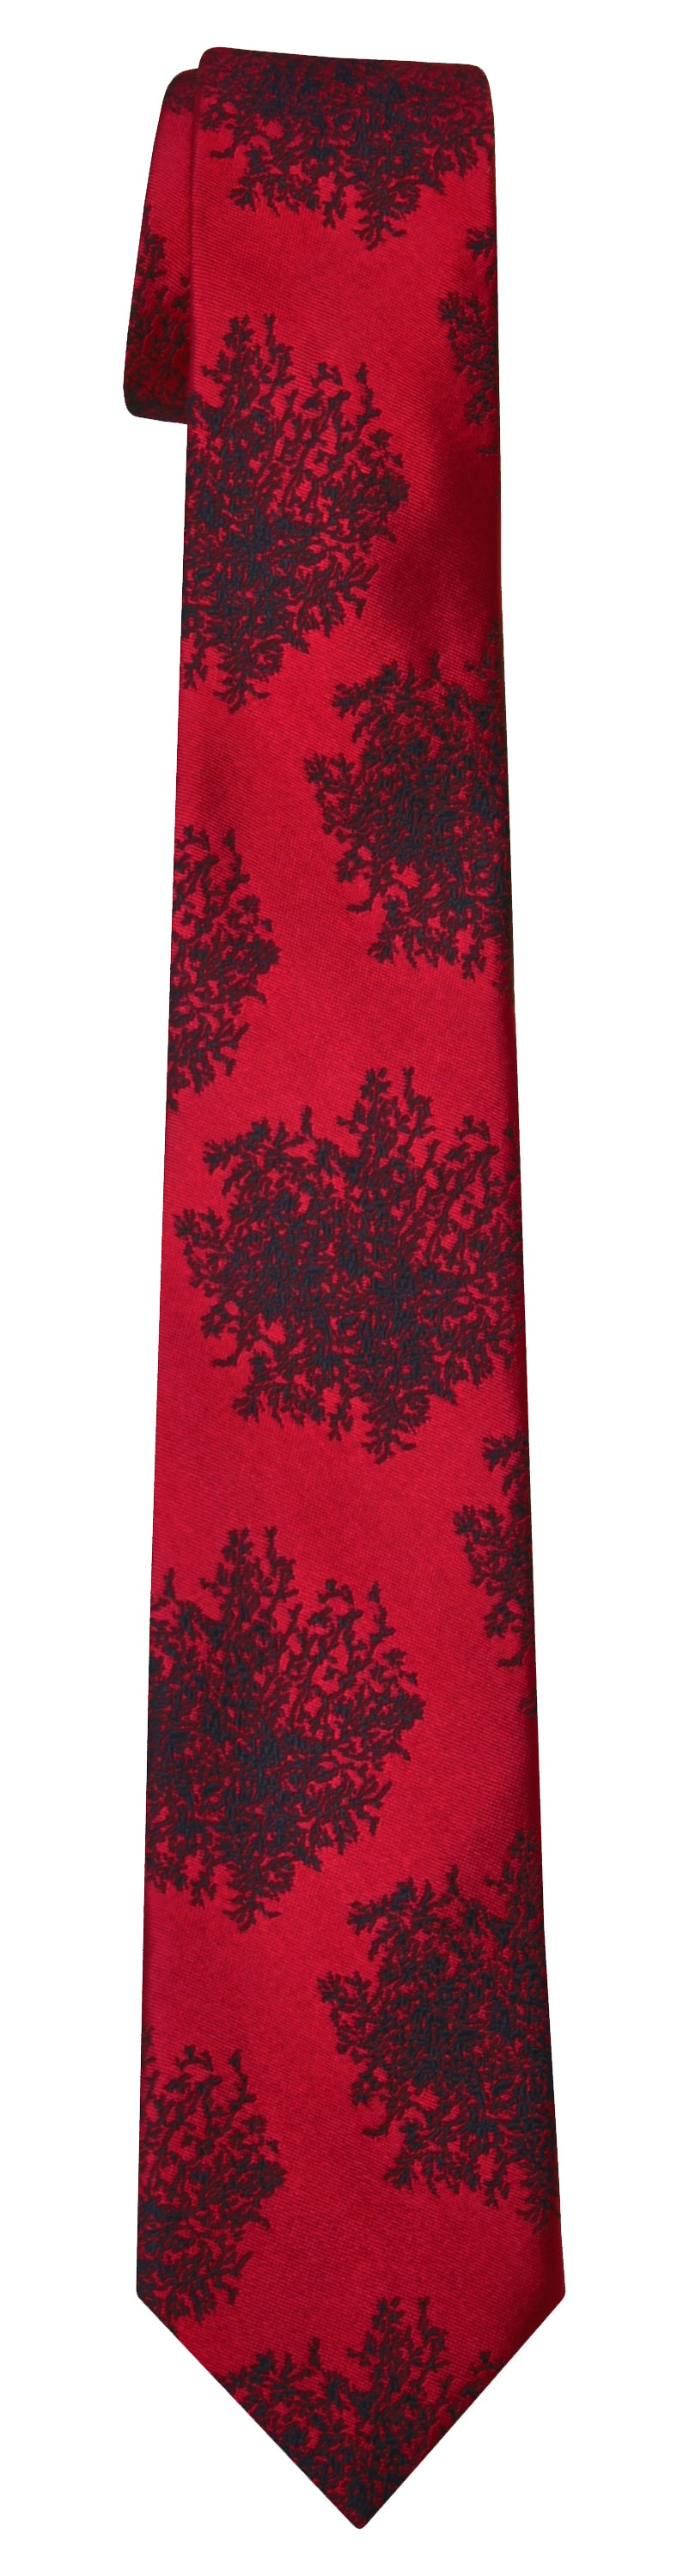 Mimi Fong Moss Tie in Red